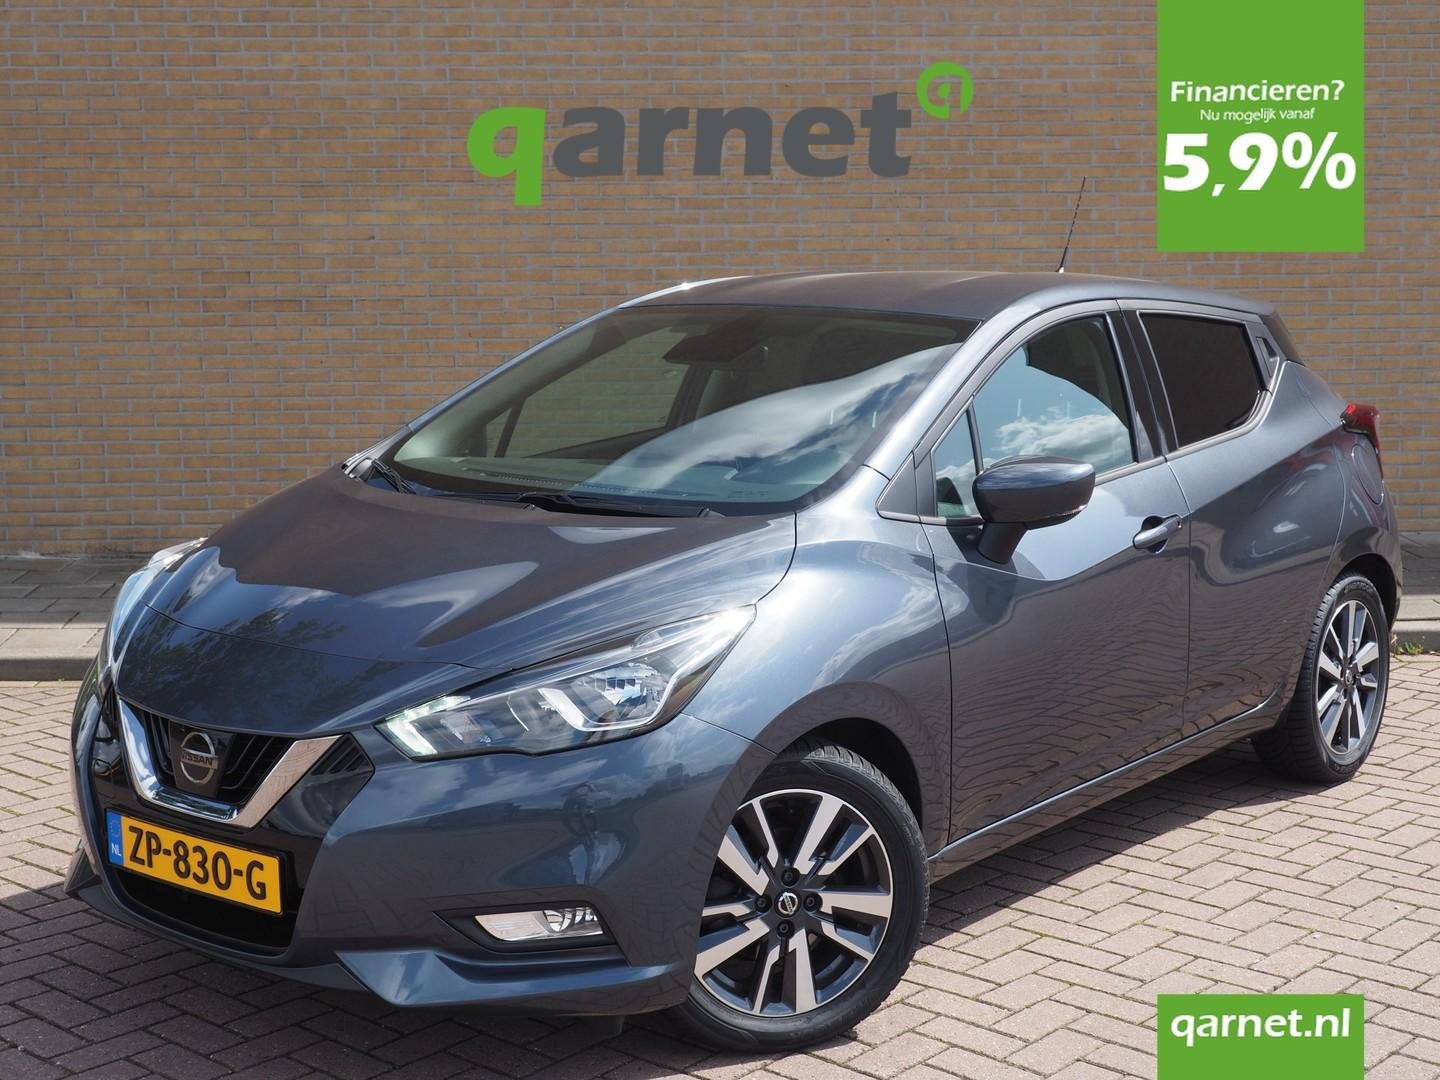 Nissan Micra 0.9 ig-t 90pk n-connecta private lease 48 mnd 10.000km p/j